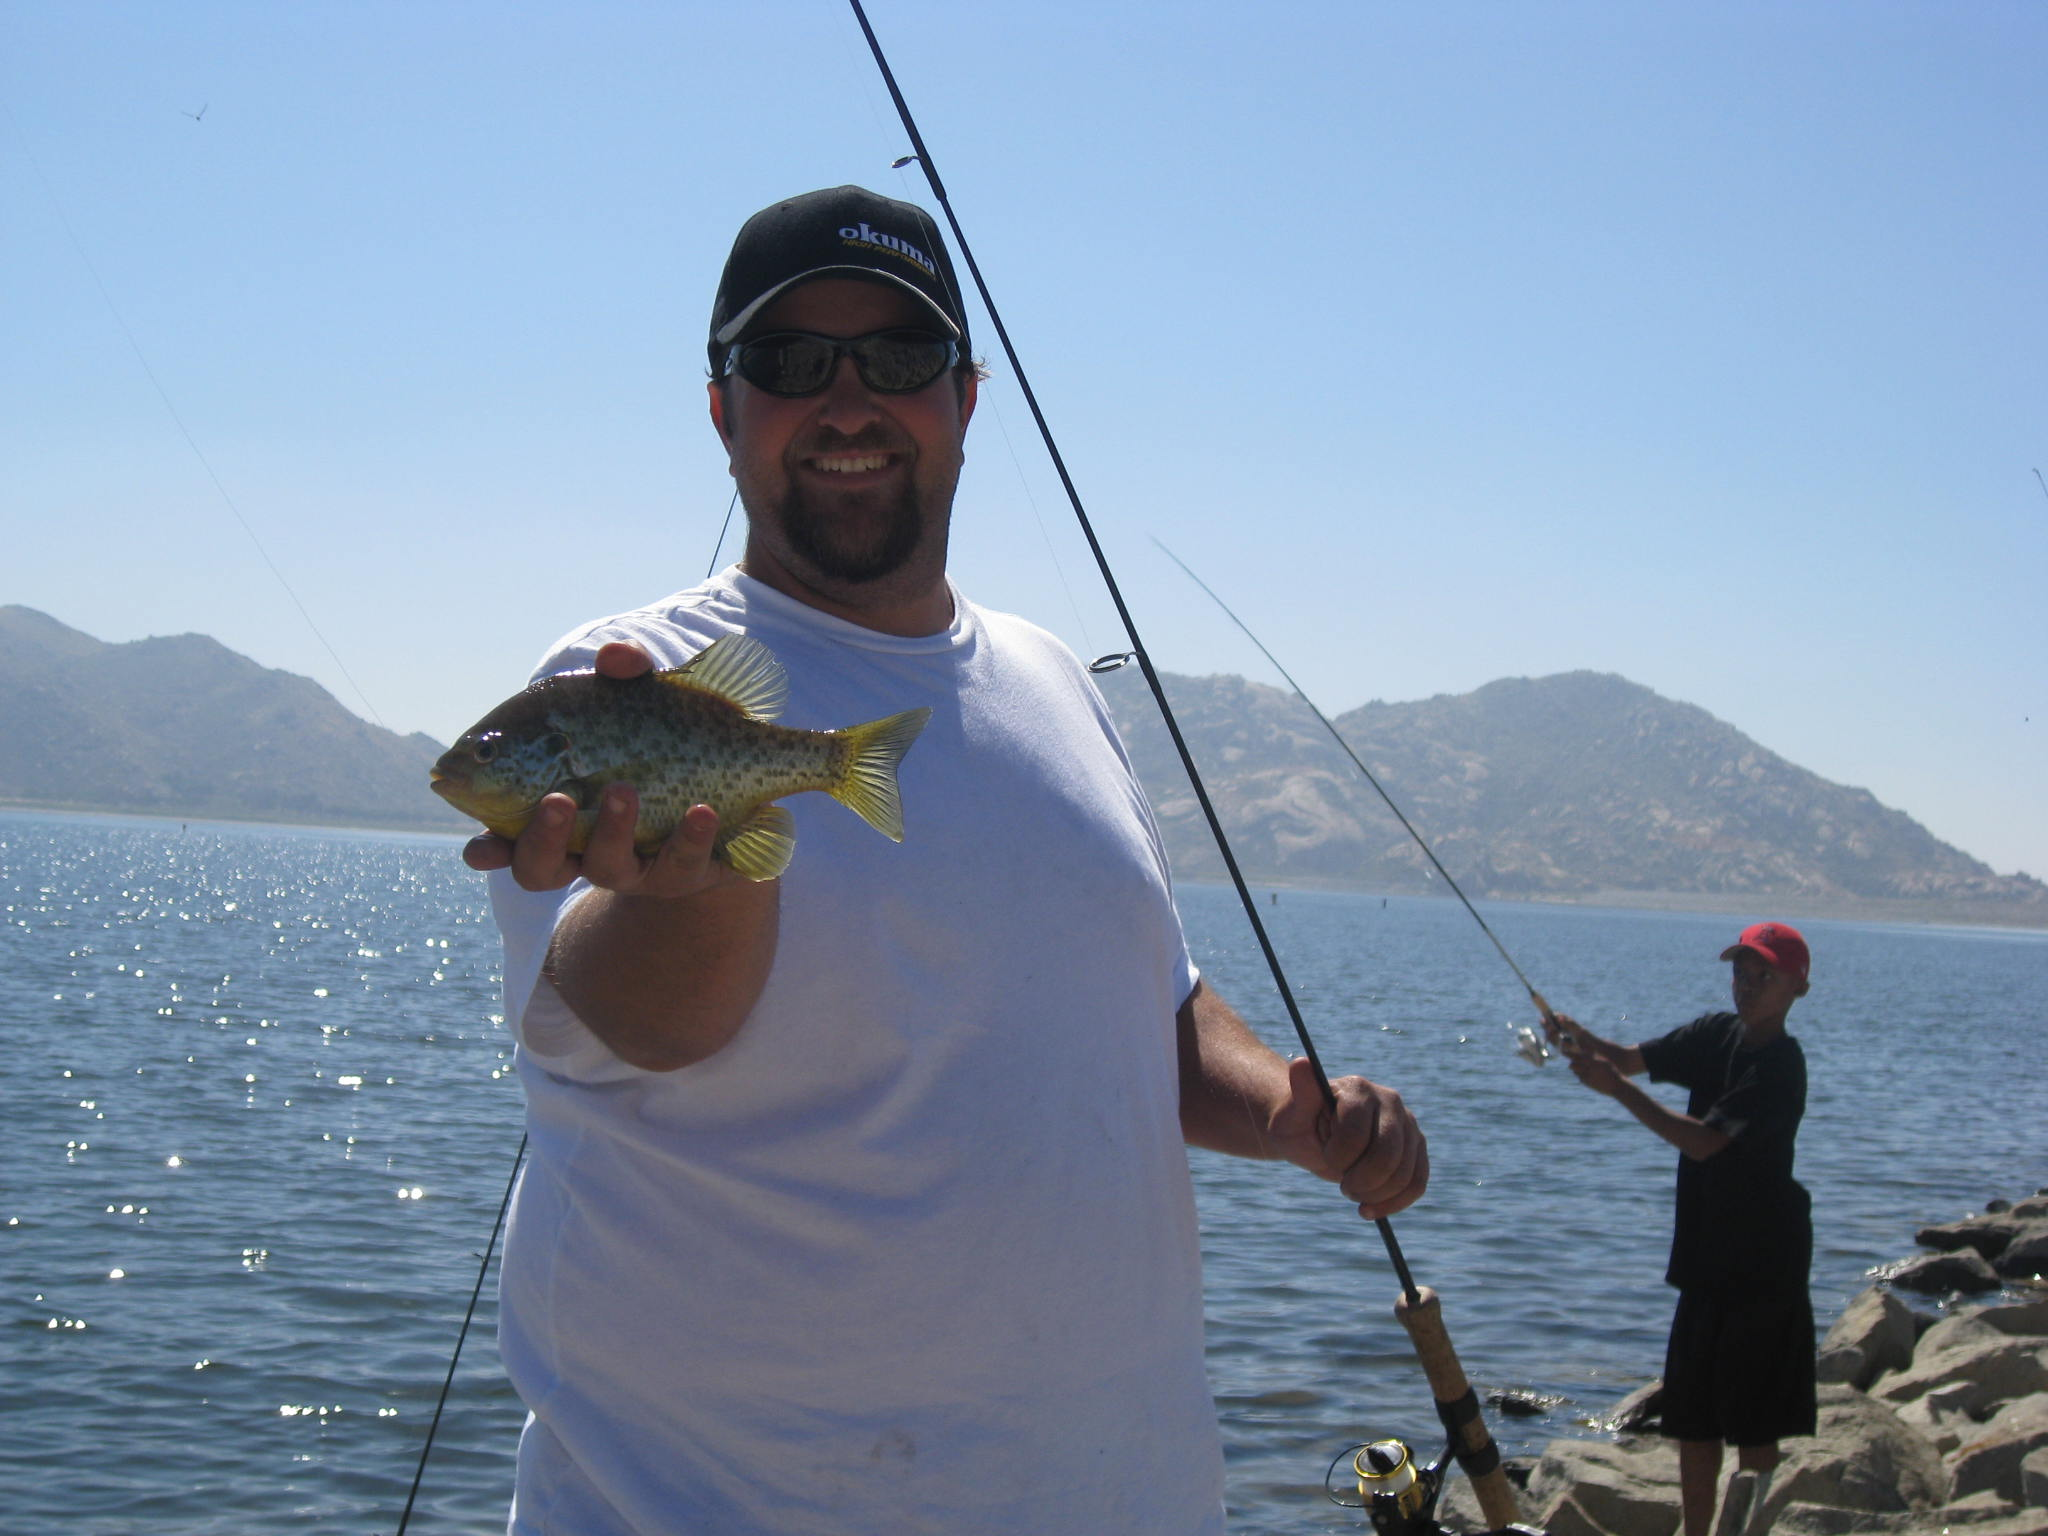 Marlon meade on sportfihing saturday at 9 am on am 570 for Lake cachuma fishing report